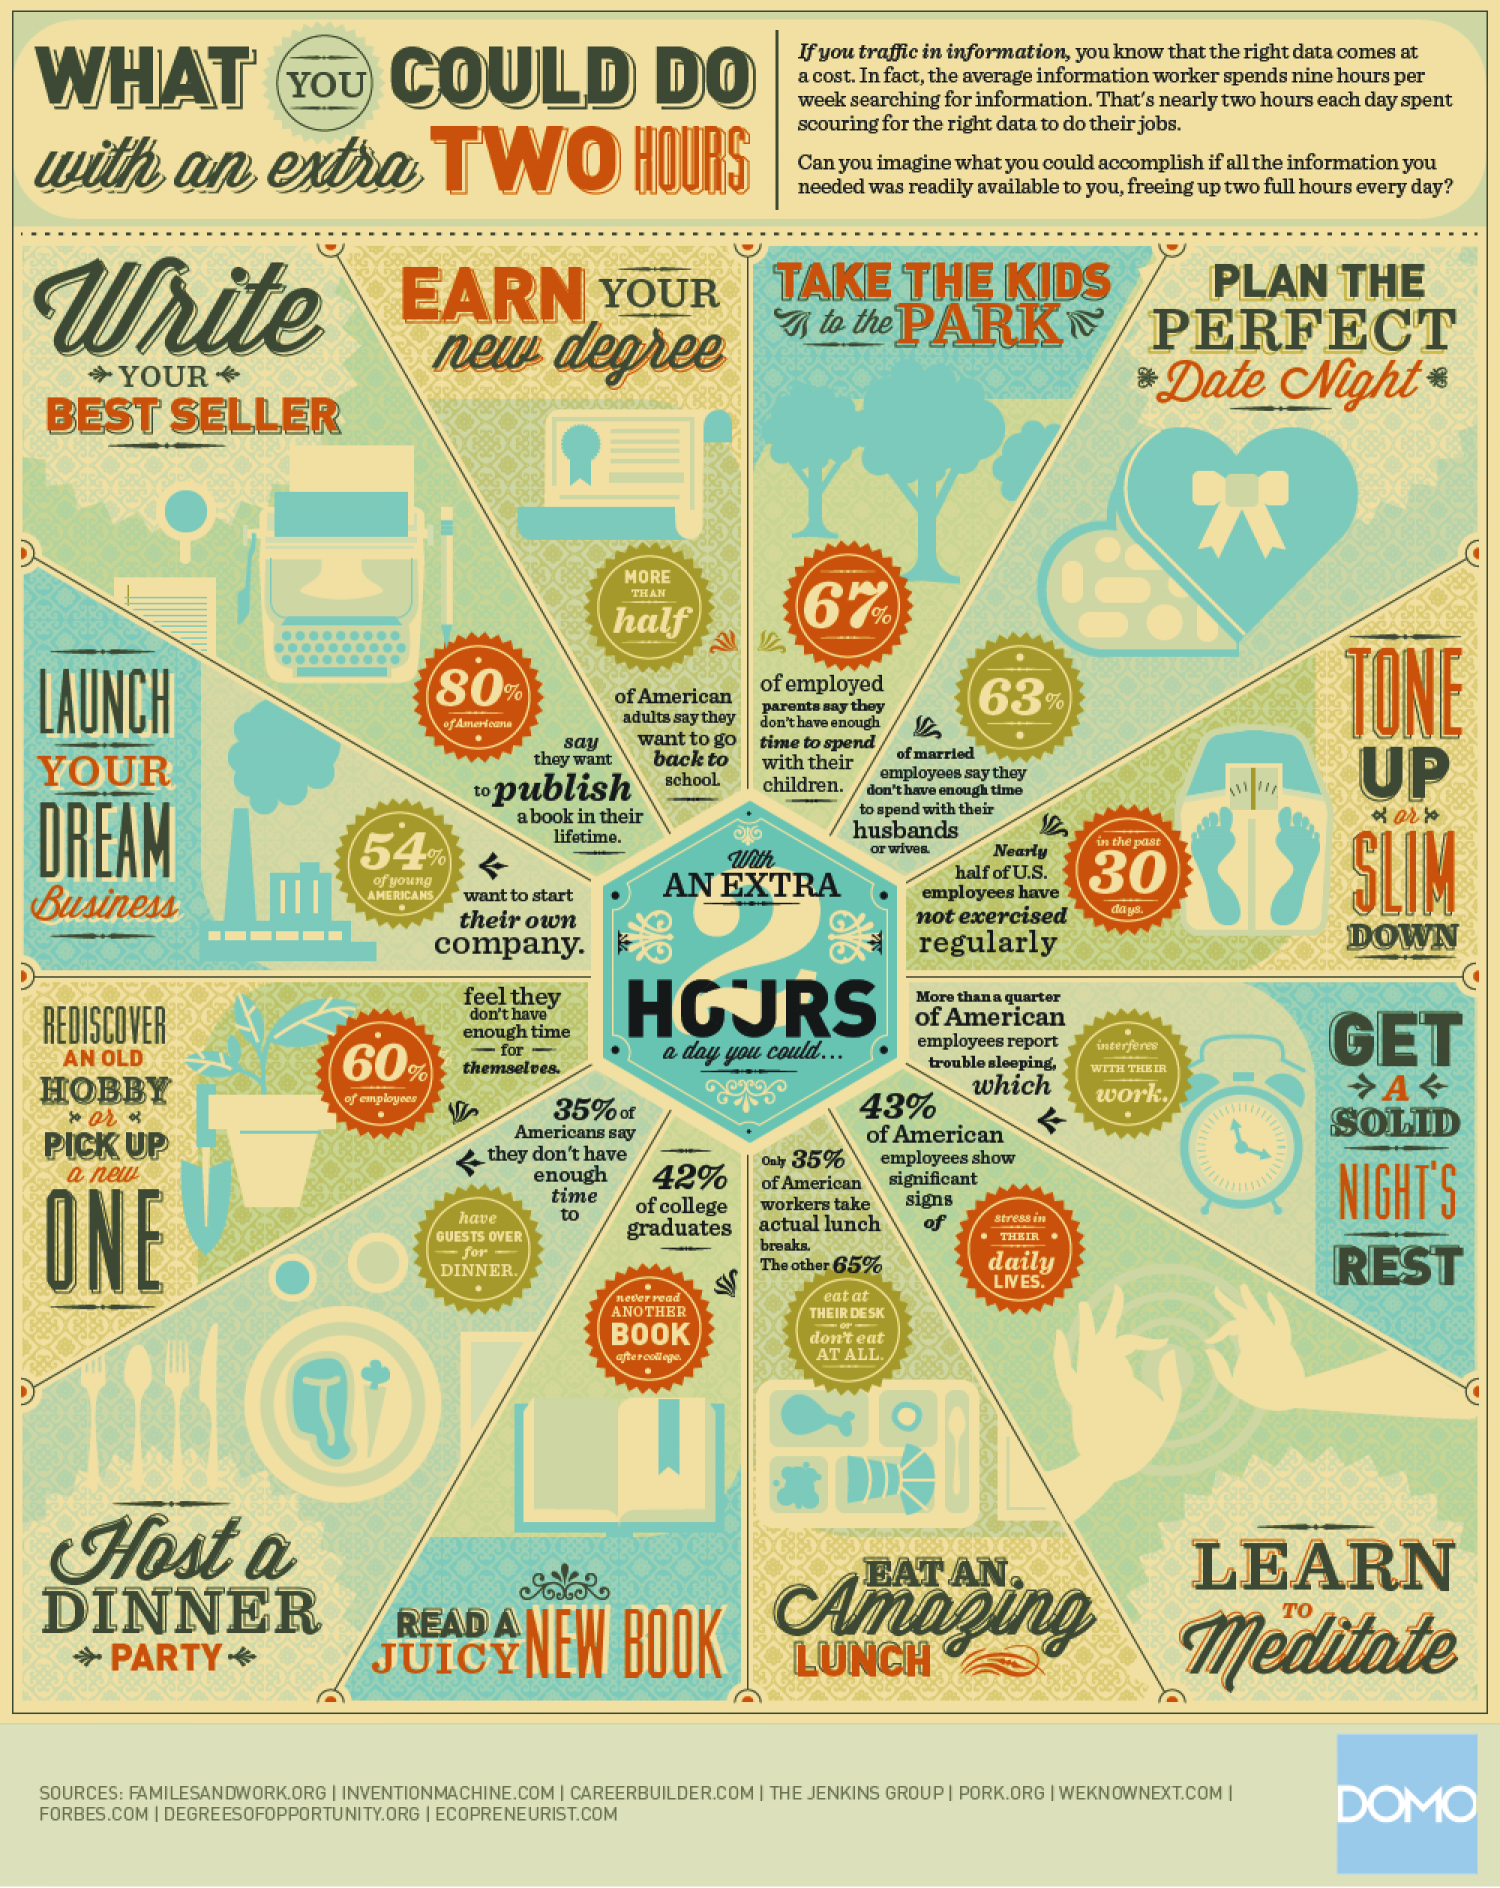 What you could do with an extra two hours? Infographic